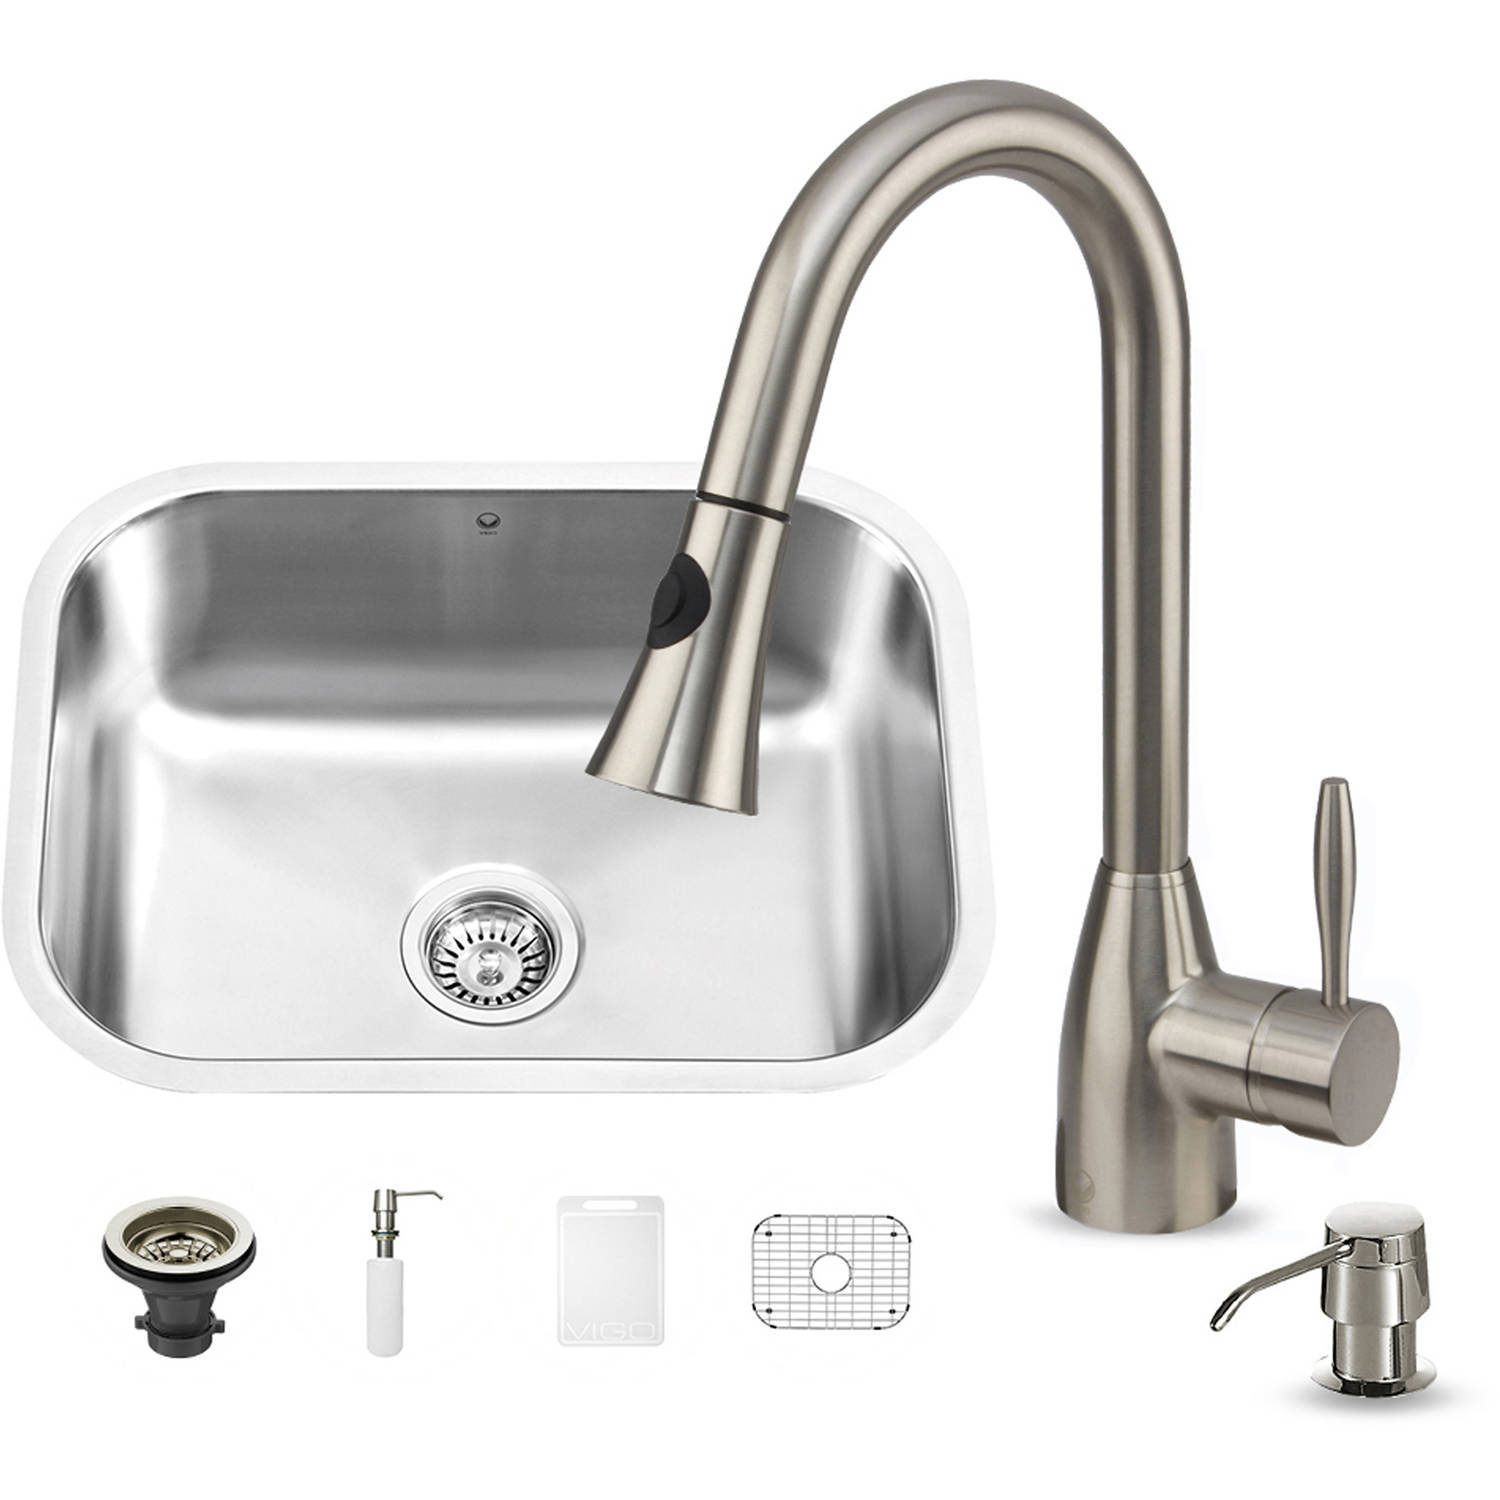 Undermount Stainless Steel Kitchen Sink, Faucet and Grid Set